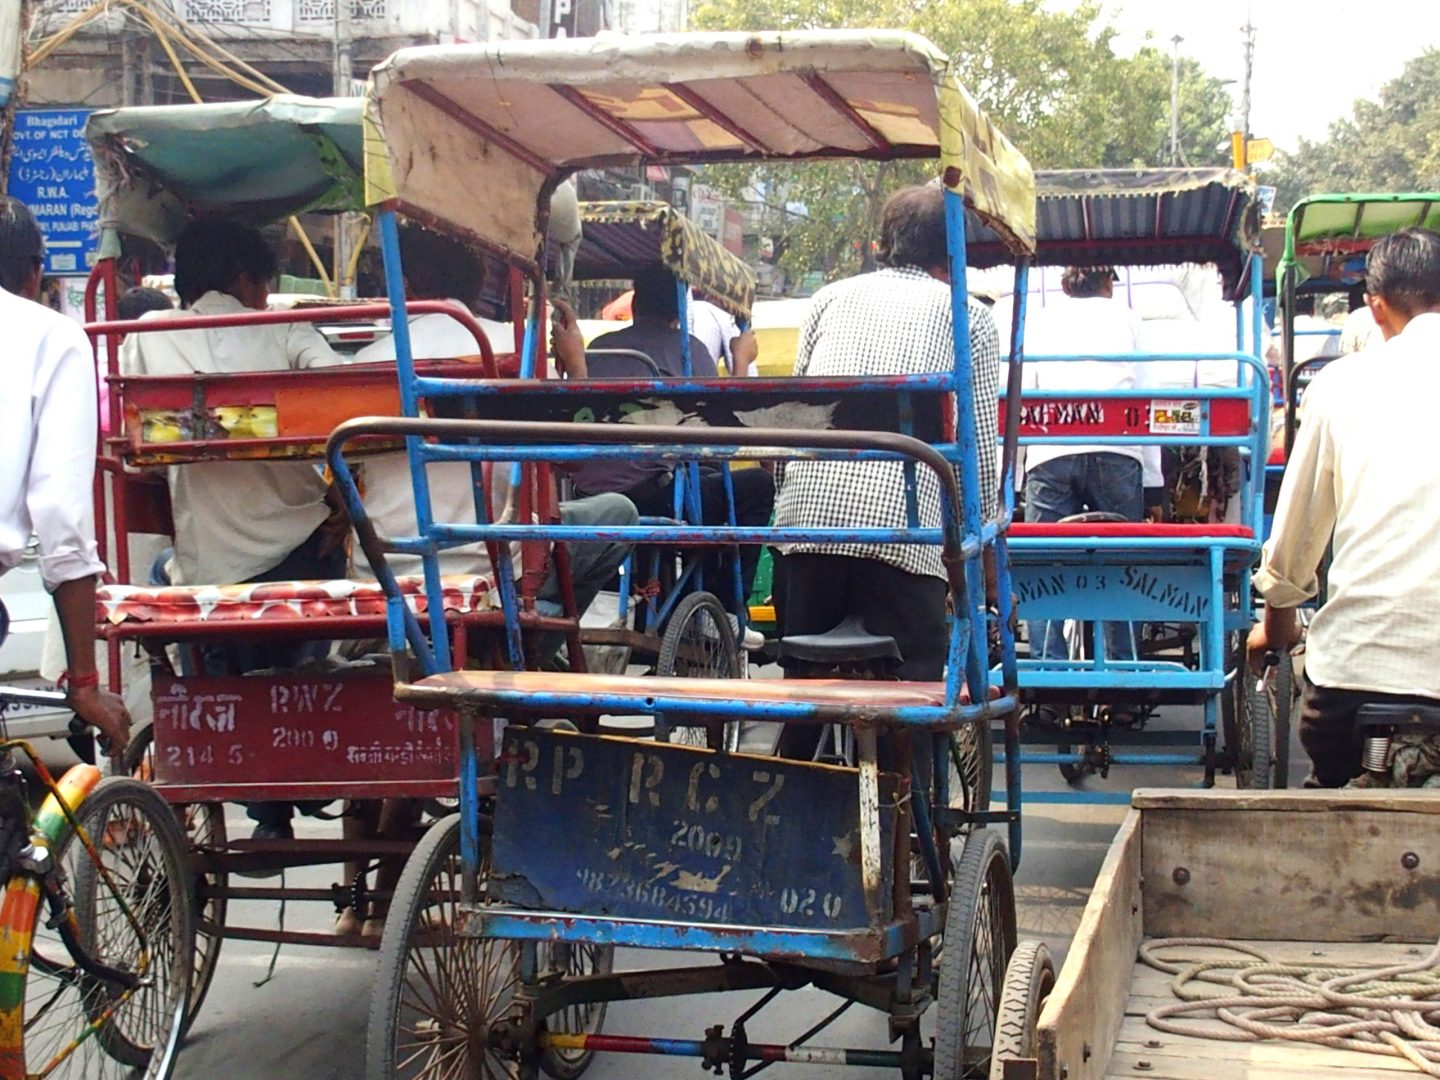 Embouteillage rickshaws Old Delhi Inde